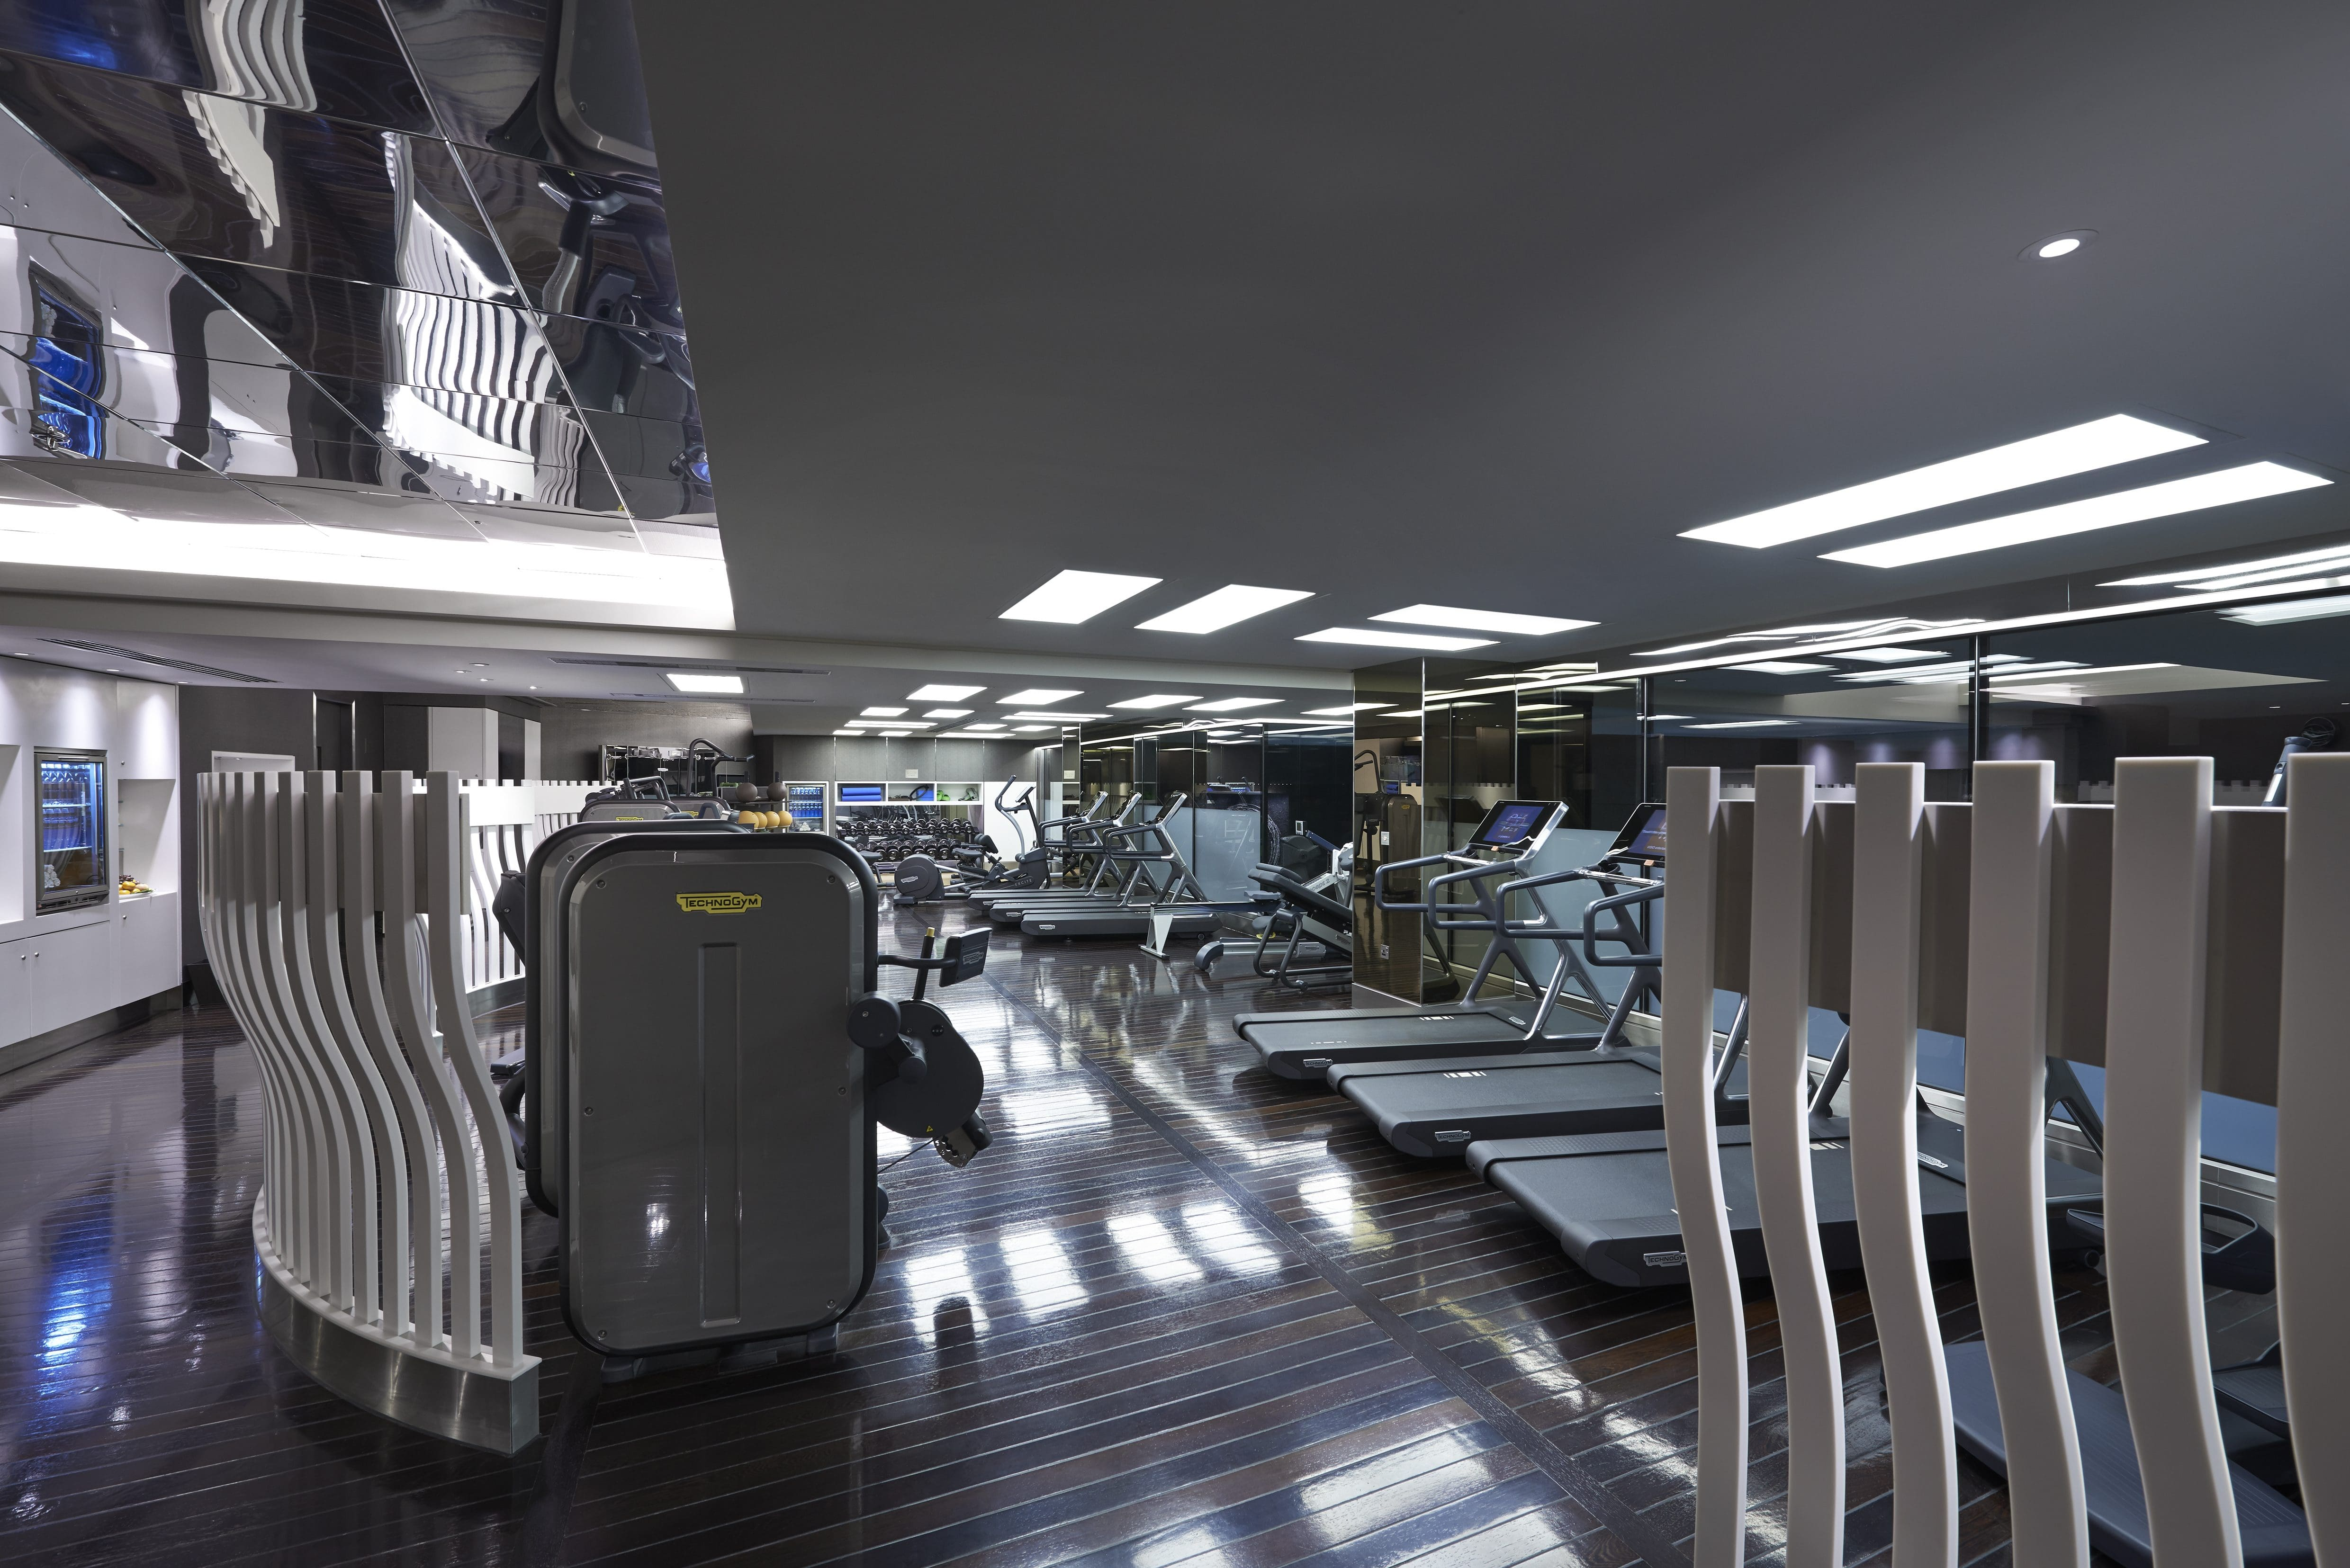 Fitness center at the sanderson london hotel oyster